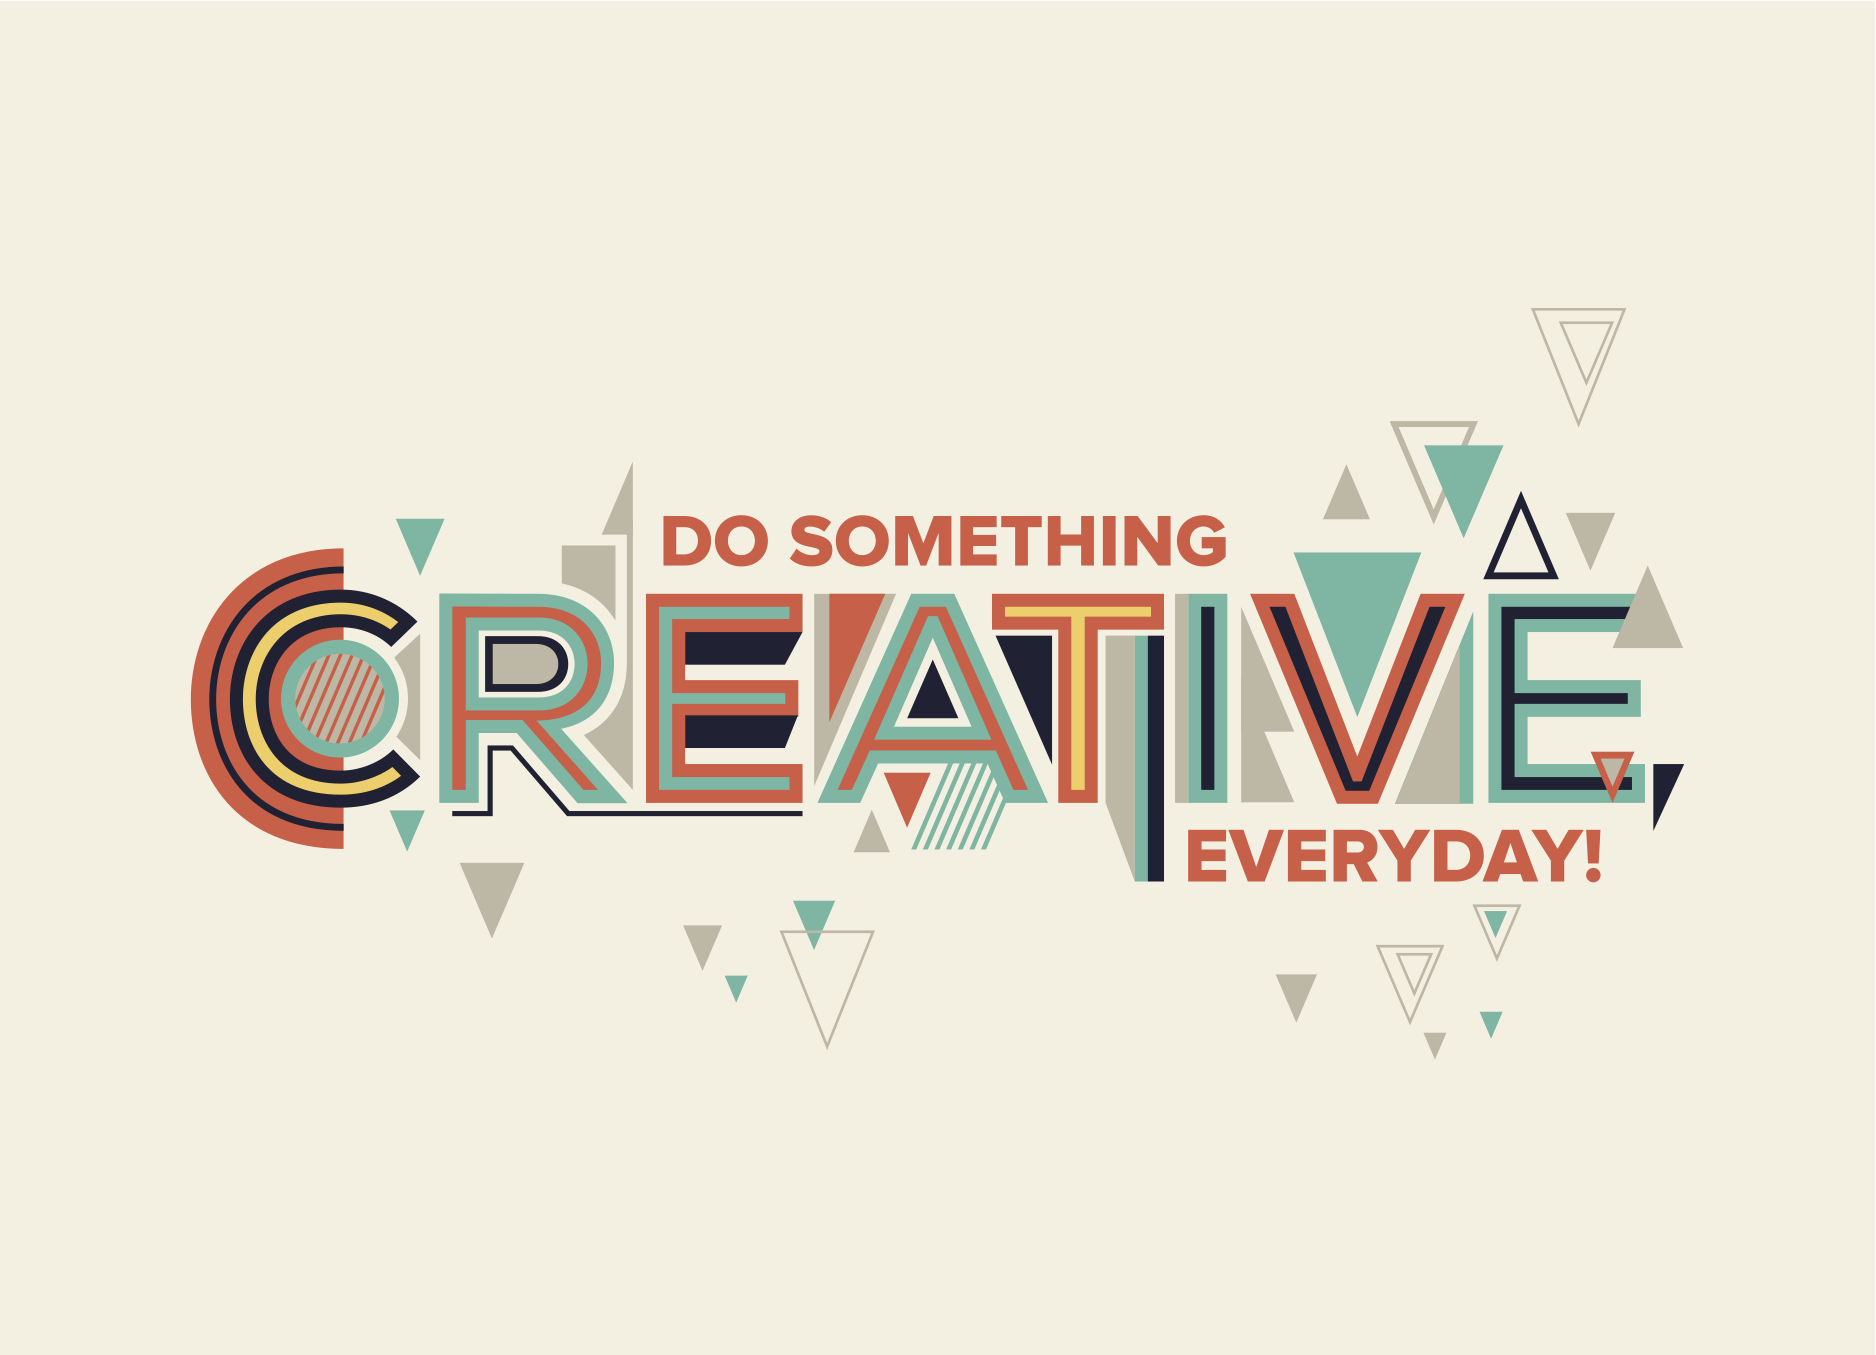 THE CREATIVE CAREER - Ever heard you can't make a living from being an artist? Well, if you have we certainly hope you didn't believe it.All about arts and entrepreneurship, The Creative Career offers insightful tools for materializing passionate ideas!